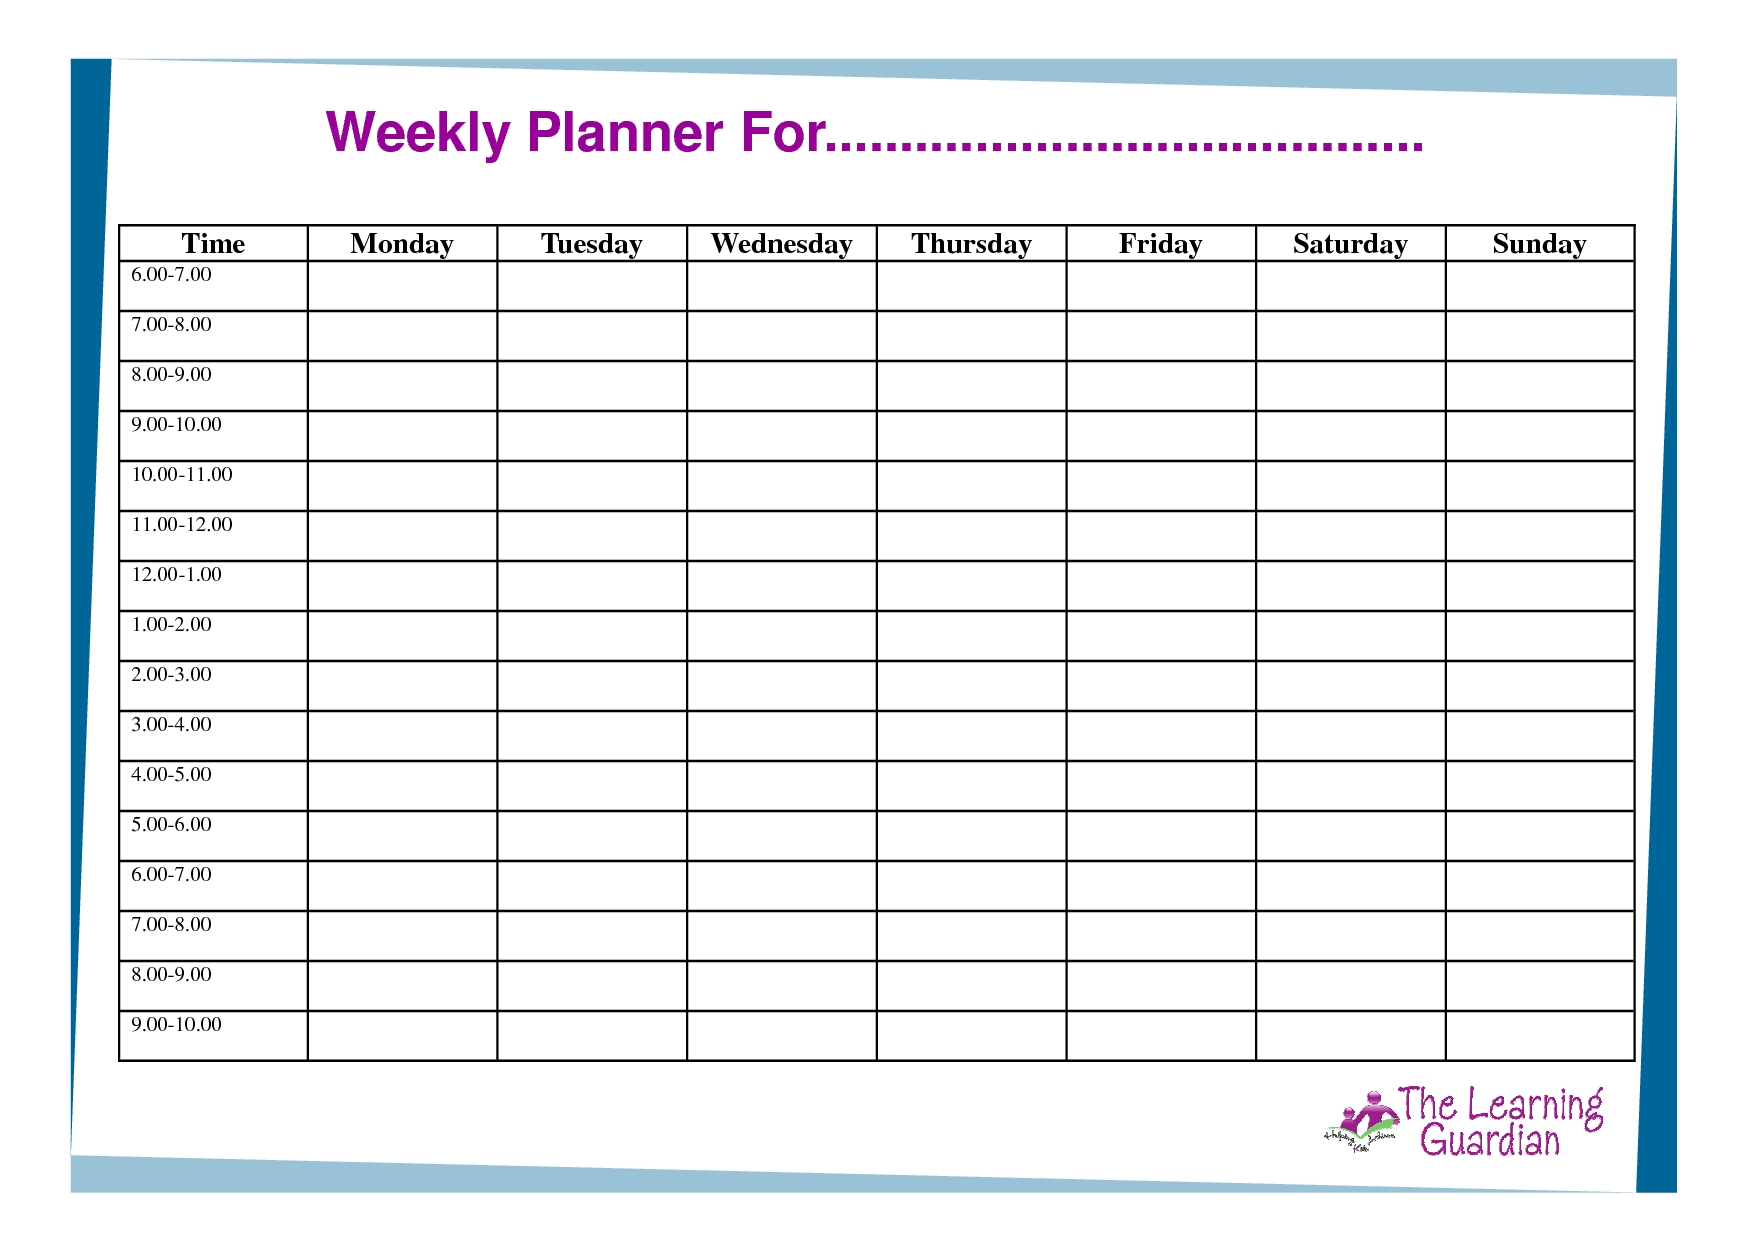 free printable weekly calendar templates weekly planner for time Free Printable Weekly Calendar Pdf  erdferdf